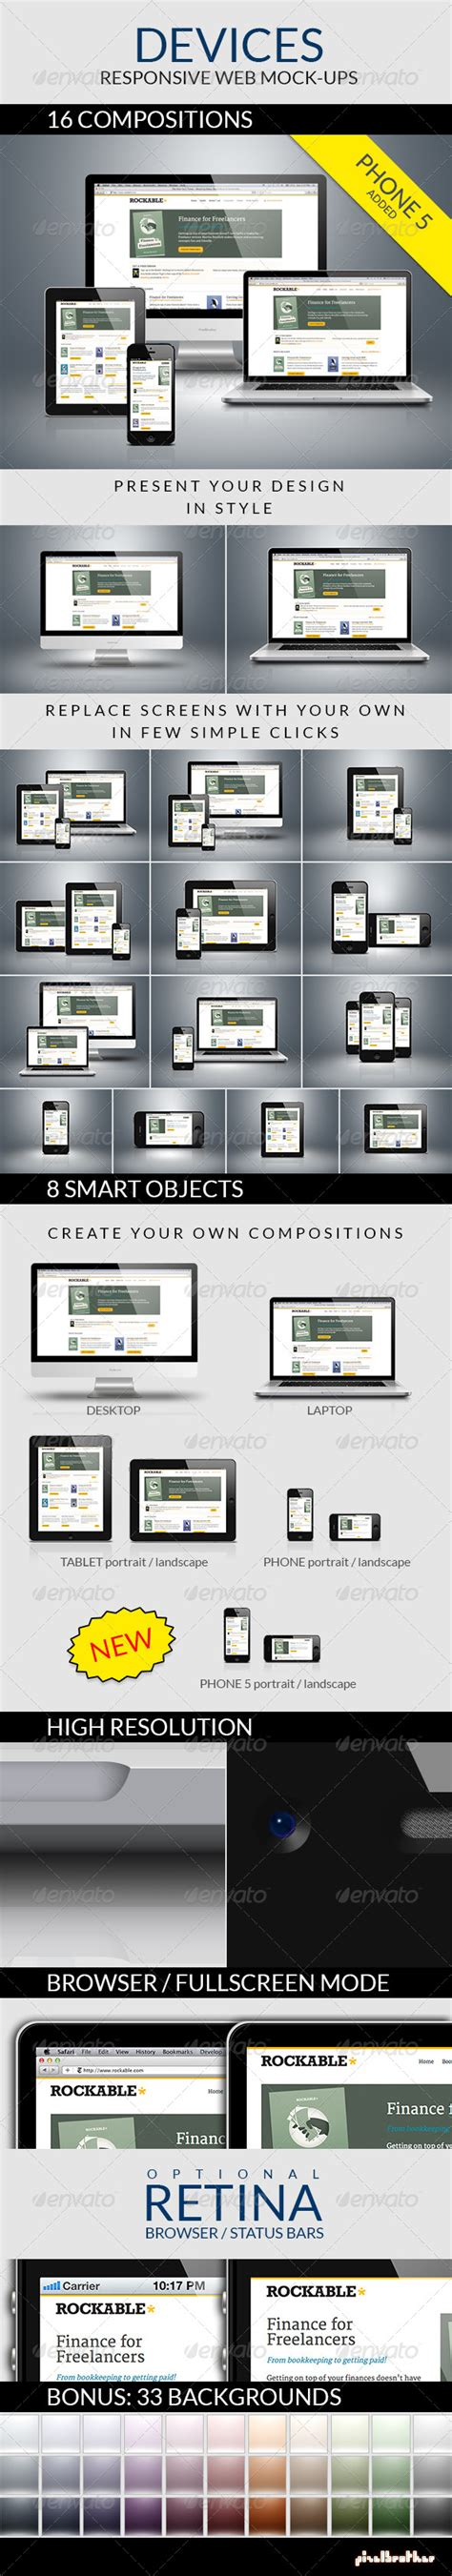 responsive layout in photoshop responsive photoshop mockups for 16 modern devices by